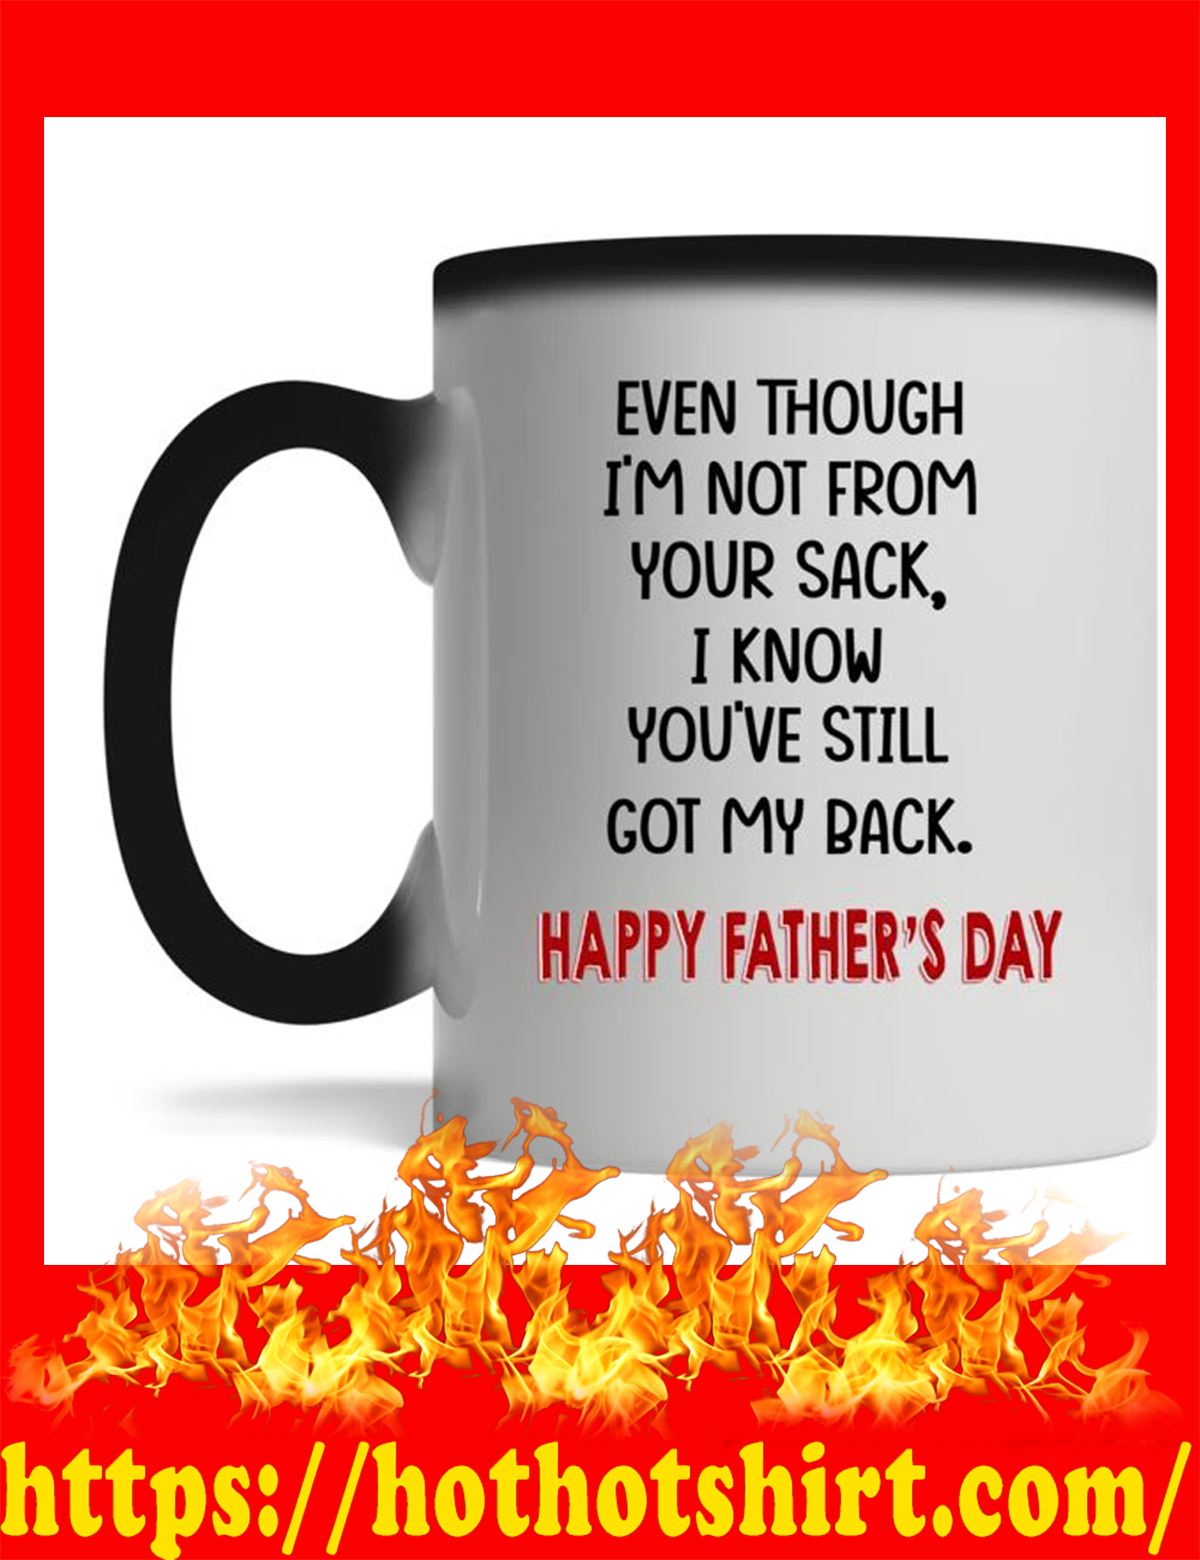 Even though i'm not from your sack i know you've still got my back happy father's day magic mug